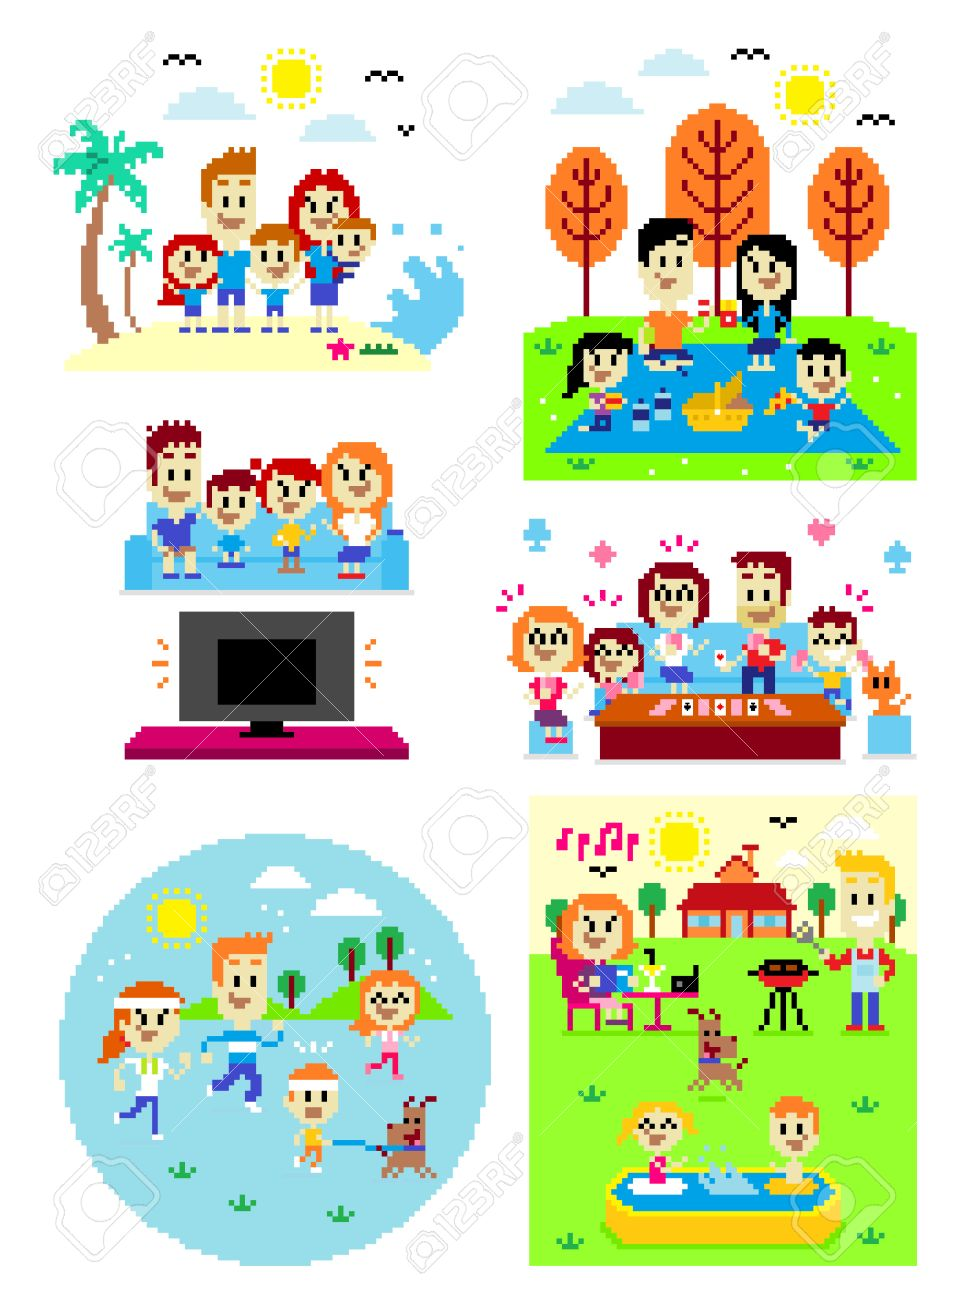 6 Cliparts of Happy Family Time: Family at the Beach, Fun Family...